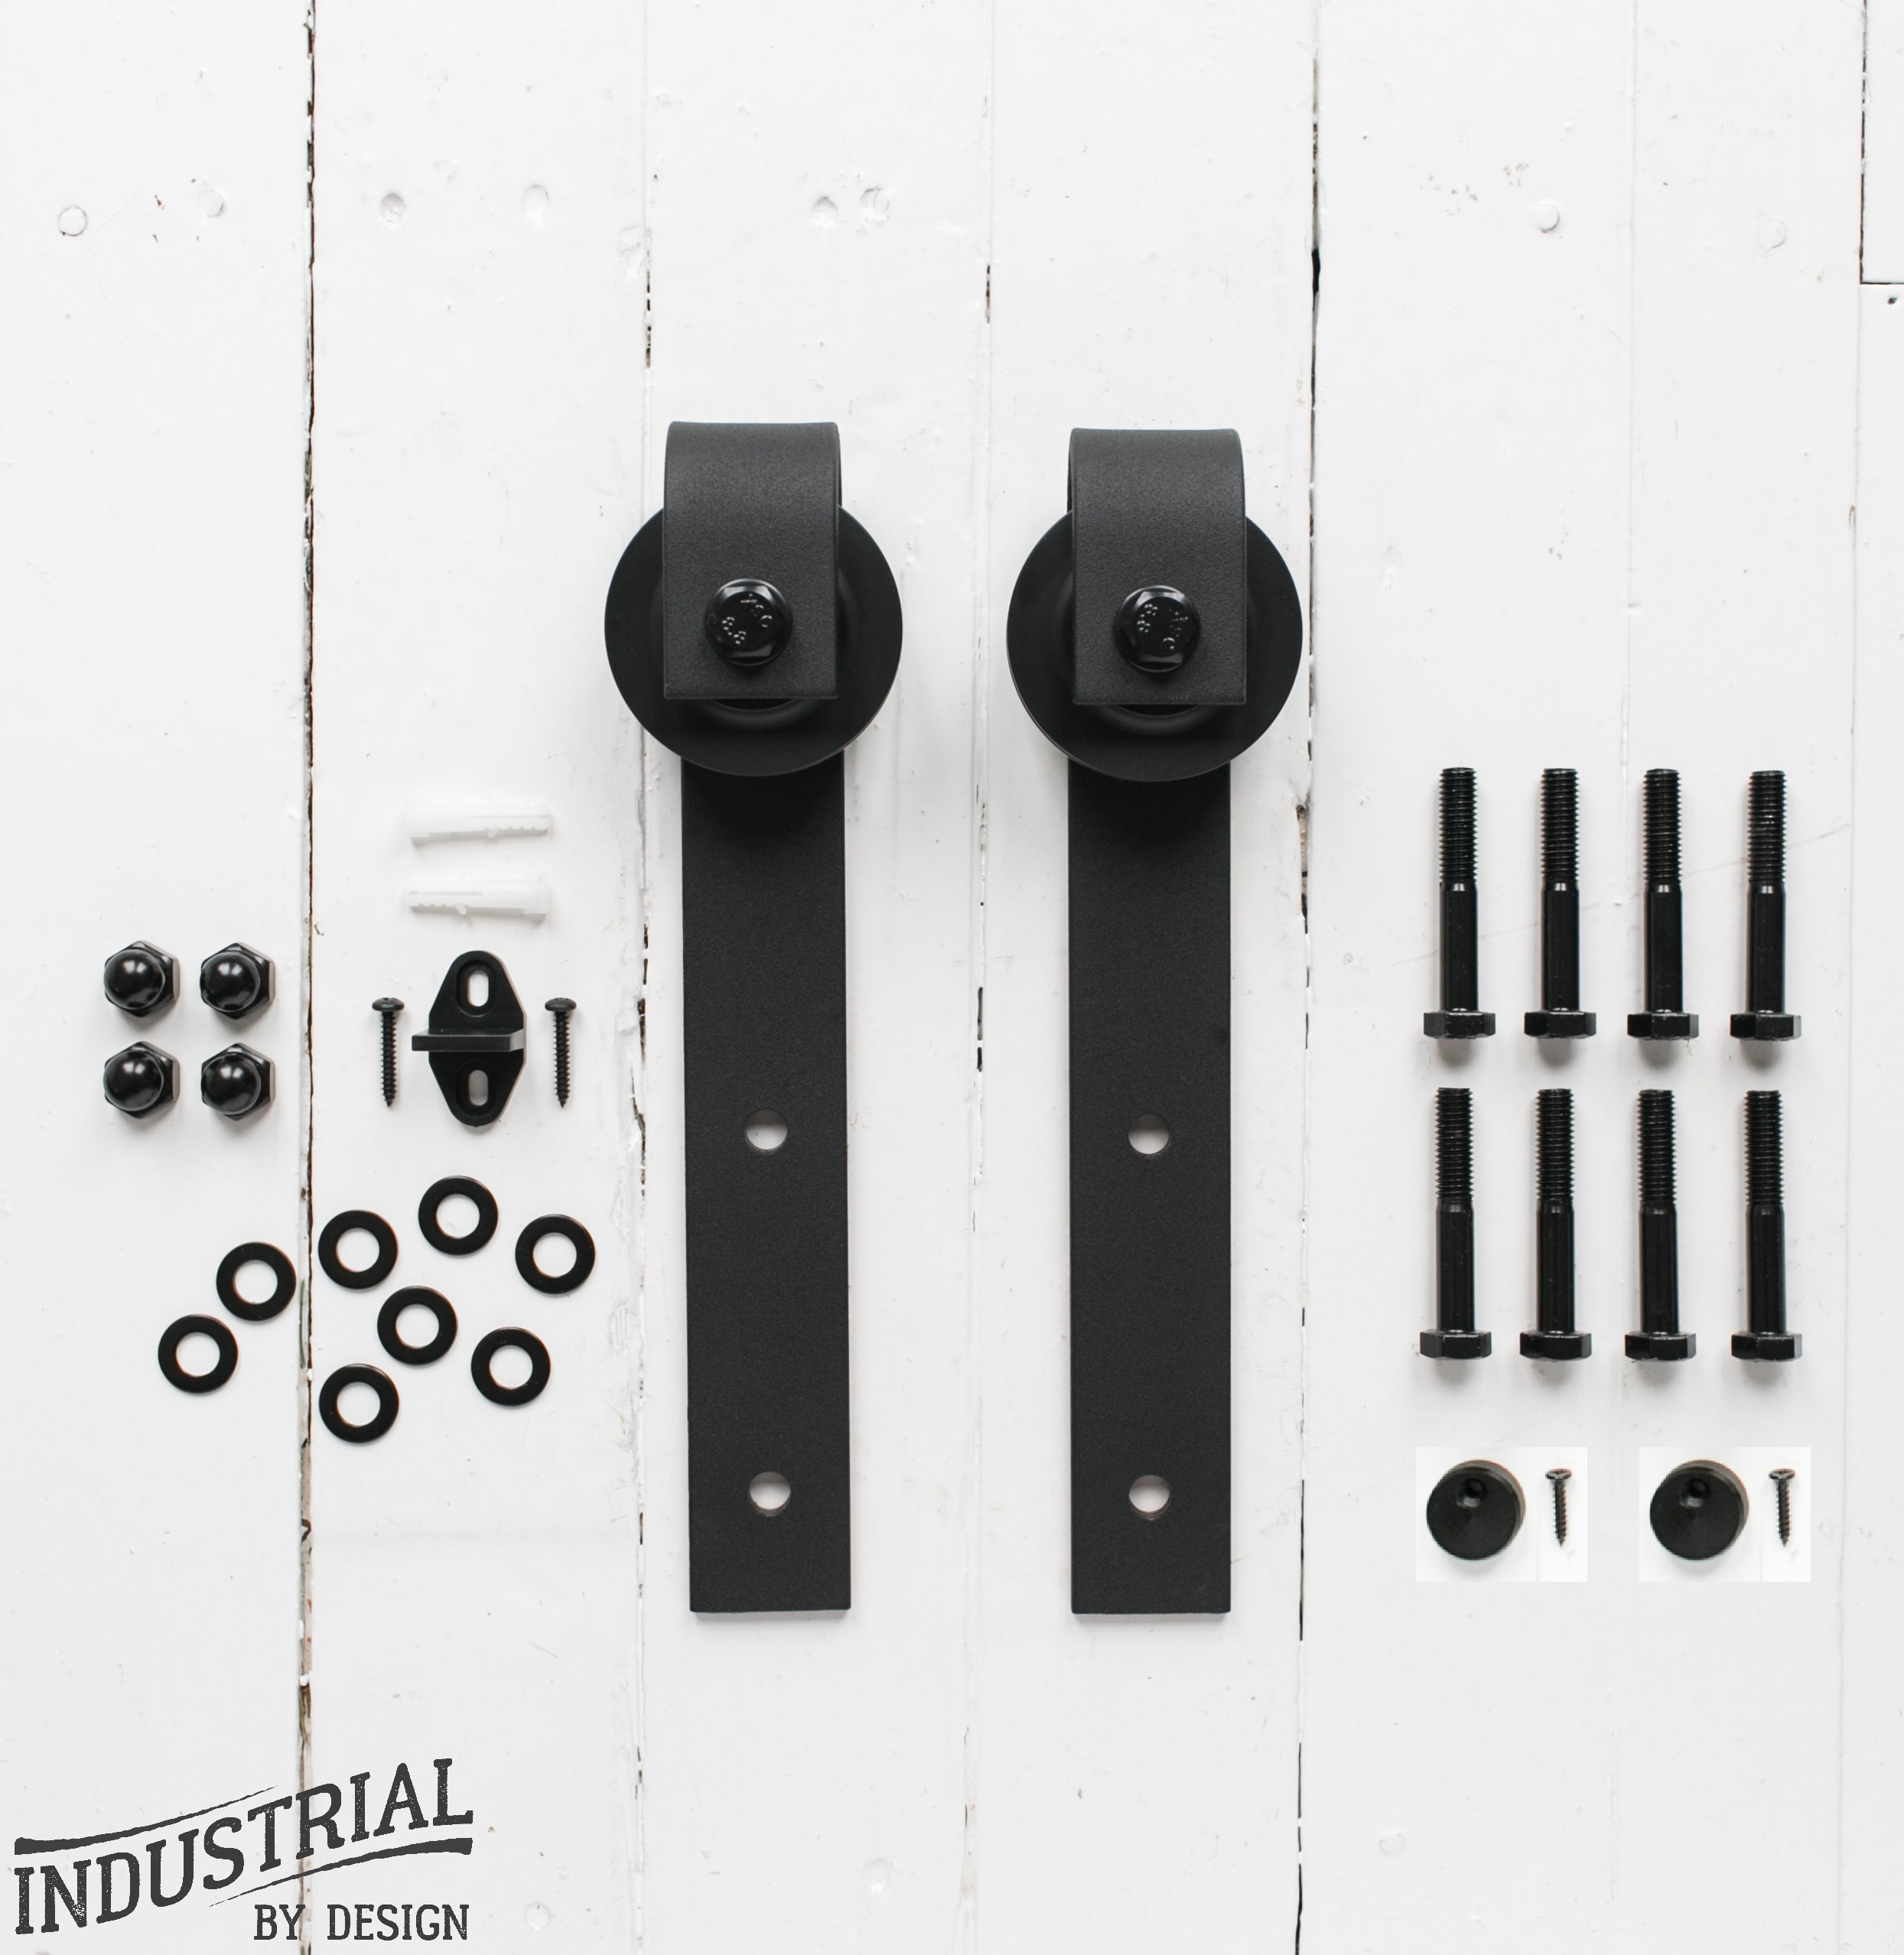 Sliding Barn Door Hangers (Black, Pair) ▫ Ultra Quiet, Successfully Tested Beyond 100,000 Rolls ▫ Industrial Strength ▫ Extra Hangers Only, No Rail